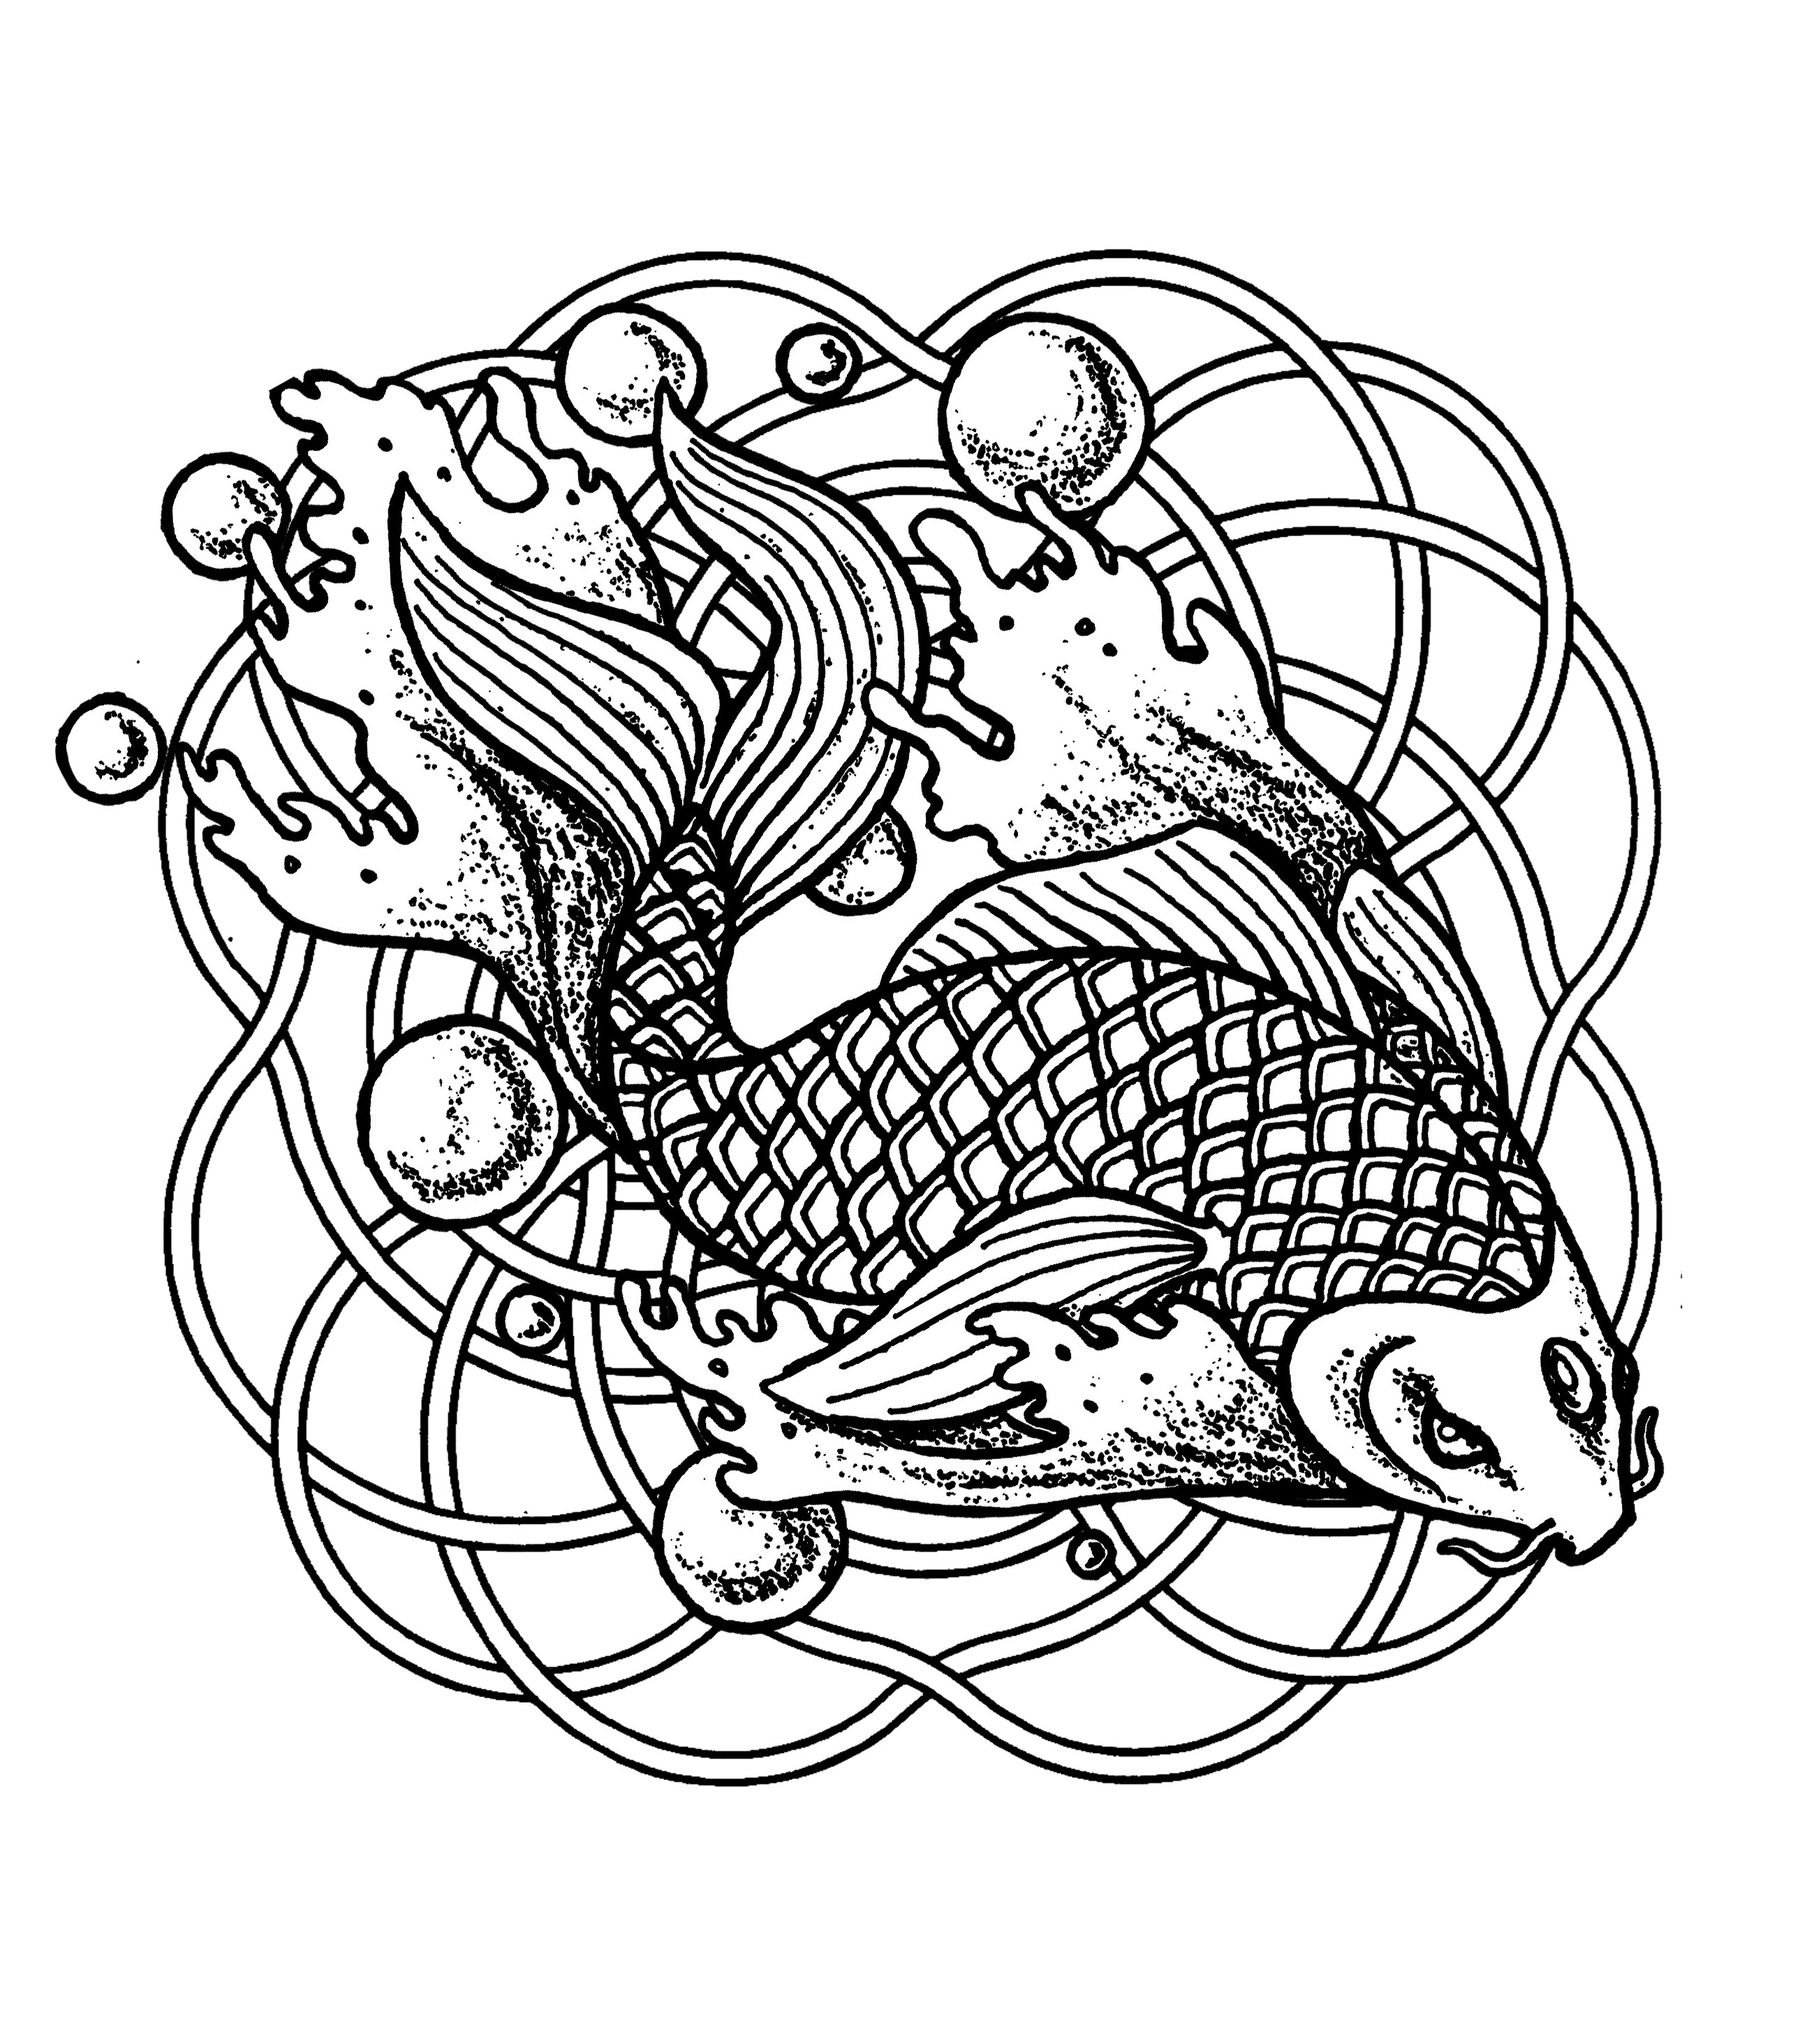 Fish Adult Coloring Pages